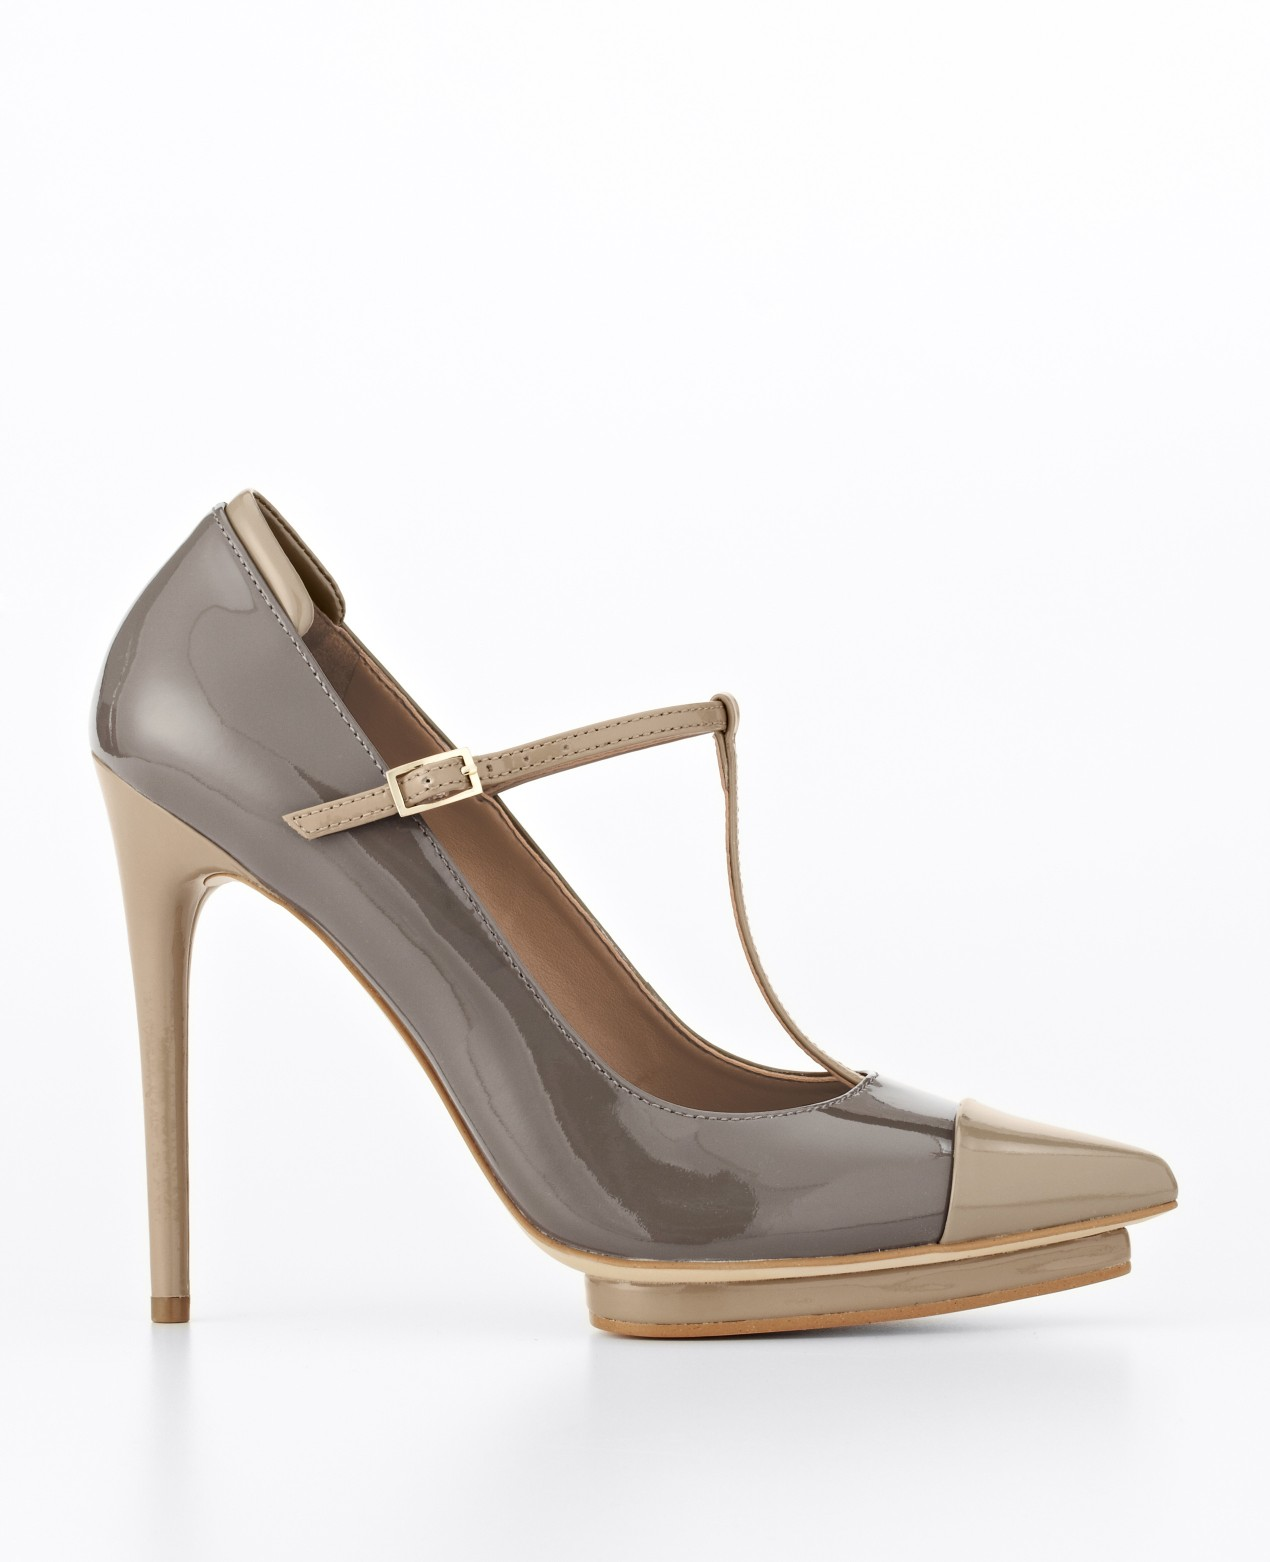 8d7fe5cfe33 Lyst - Ann Taylor Bianca Tstrap Patent Leather Platform Pumps in Gray